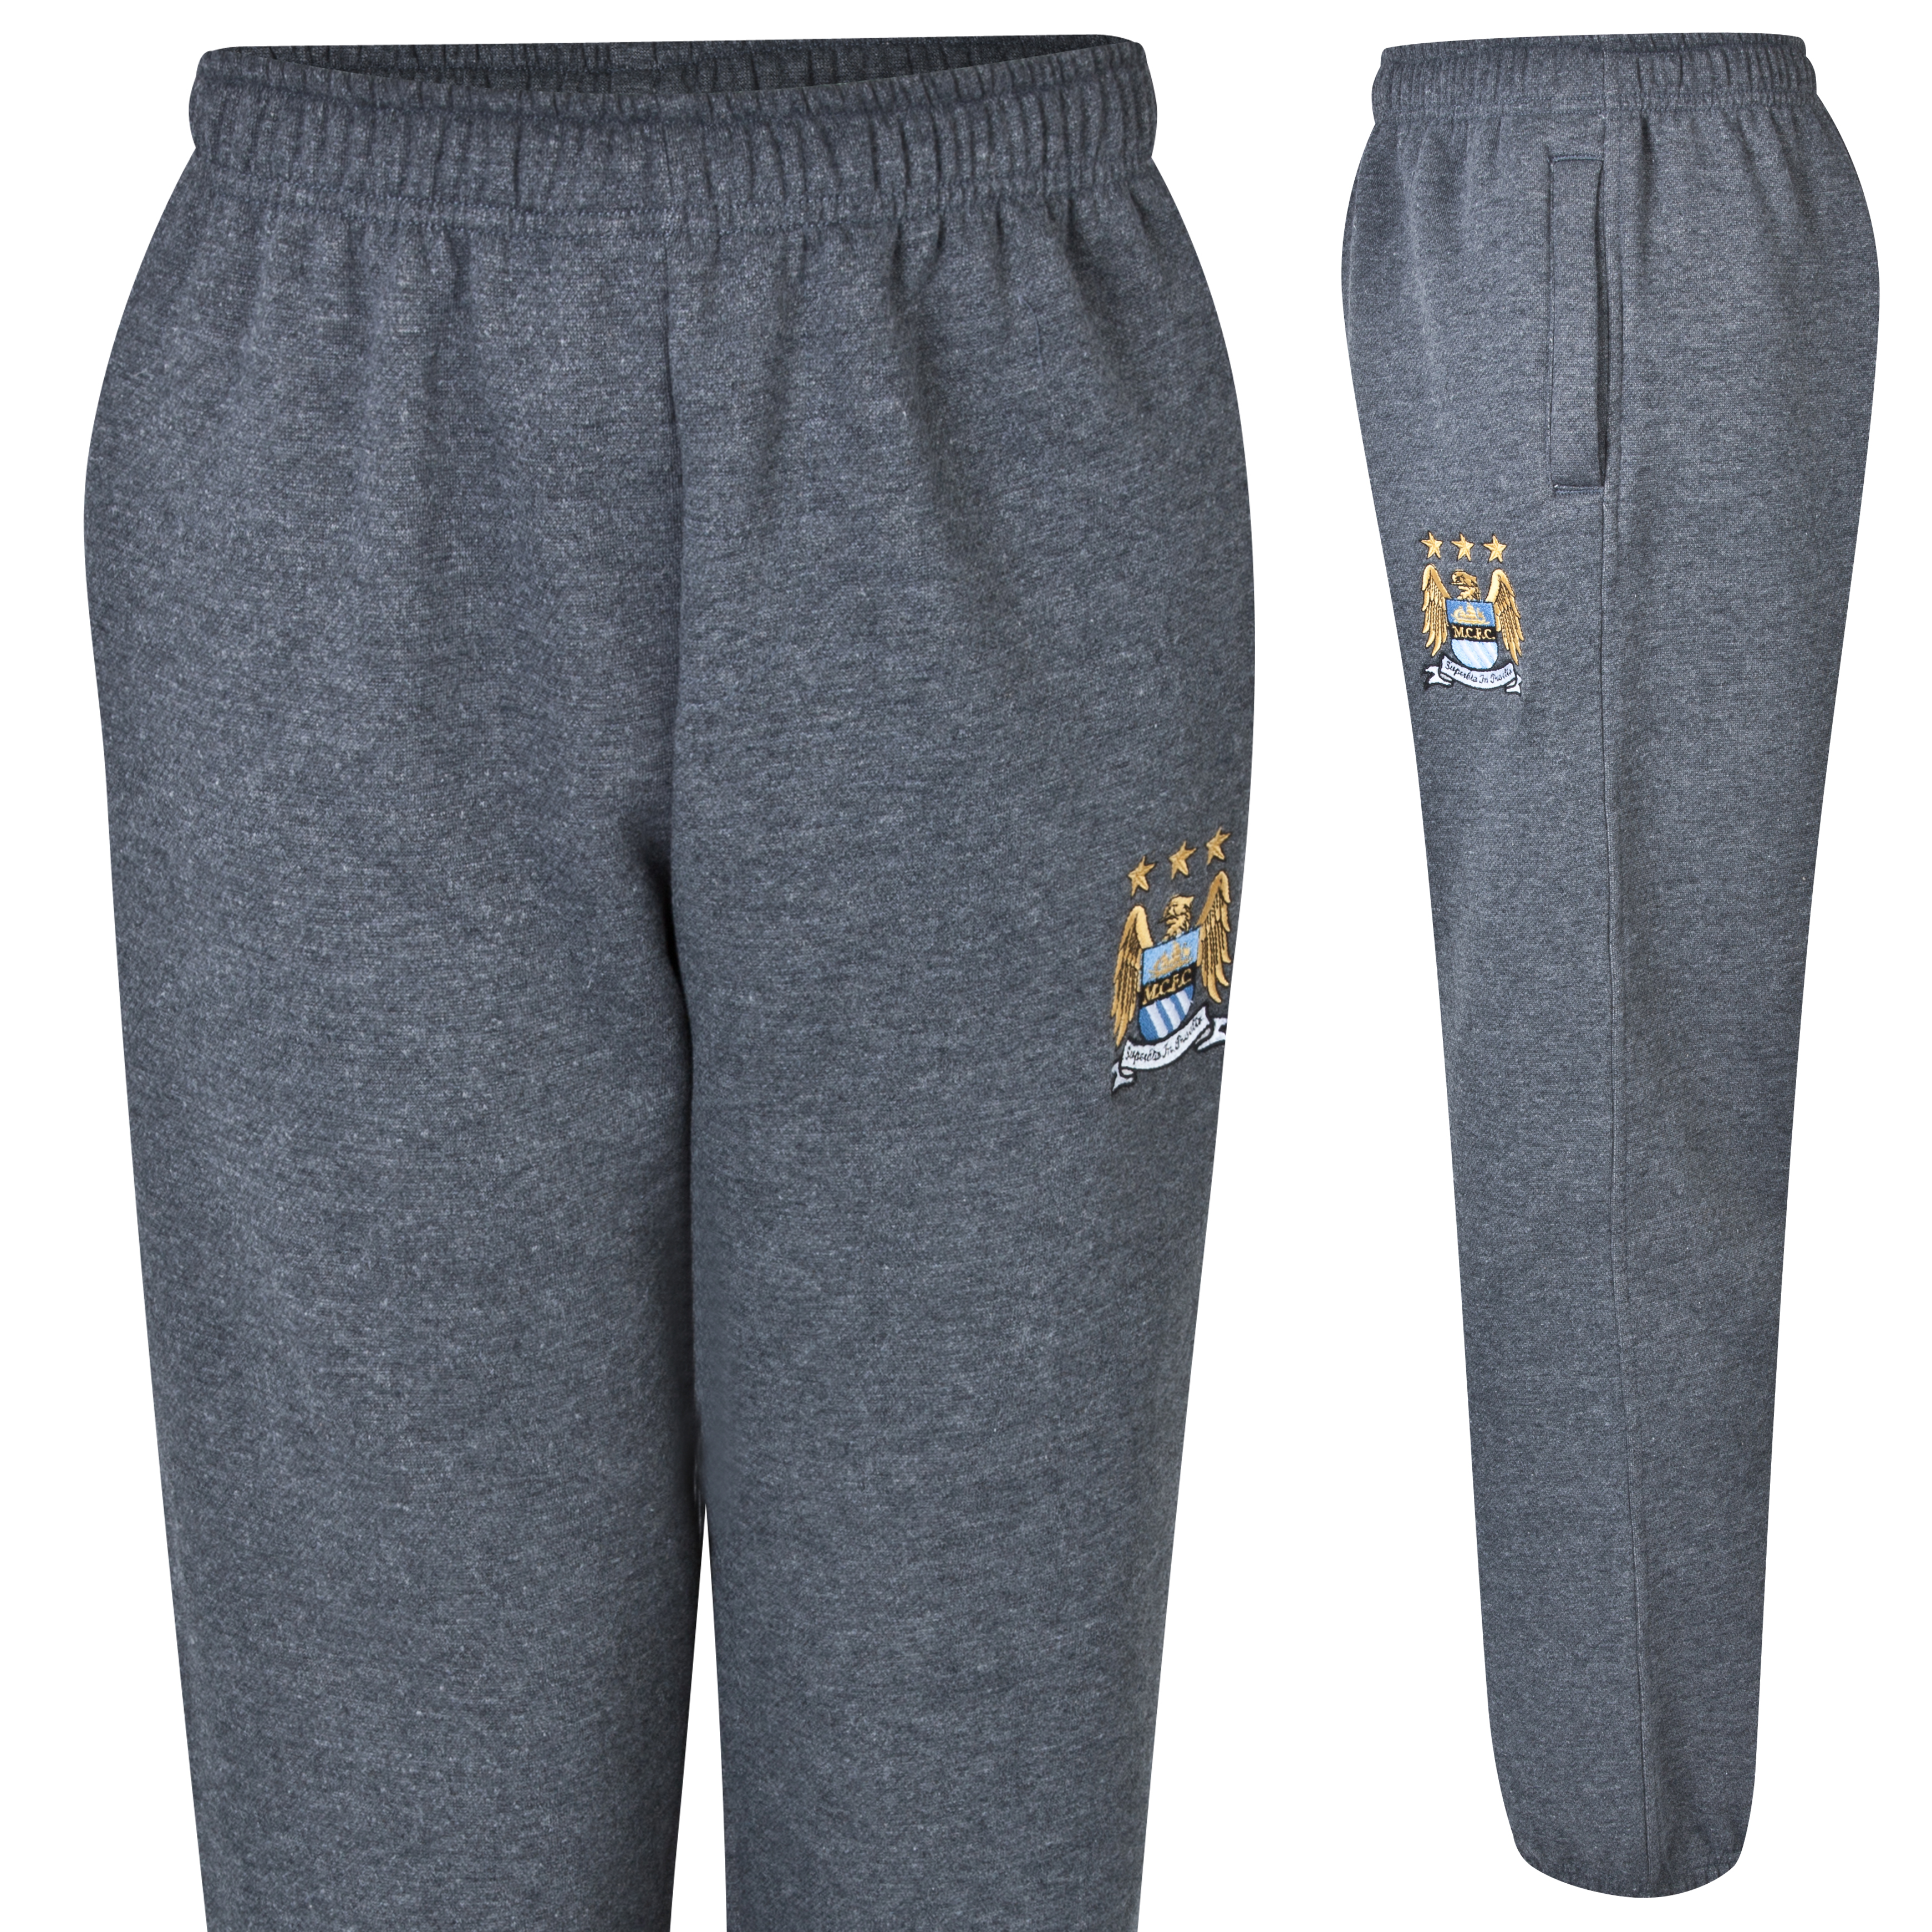 Manchester City Essentials Aim Jog Pants - Older Boys Charcoal